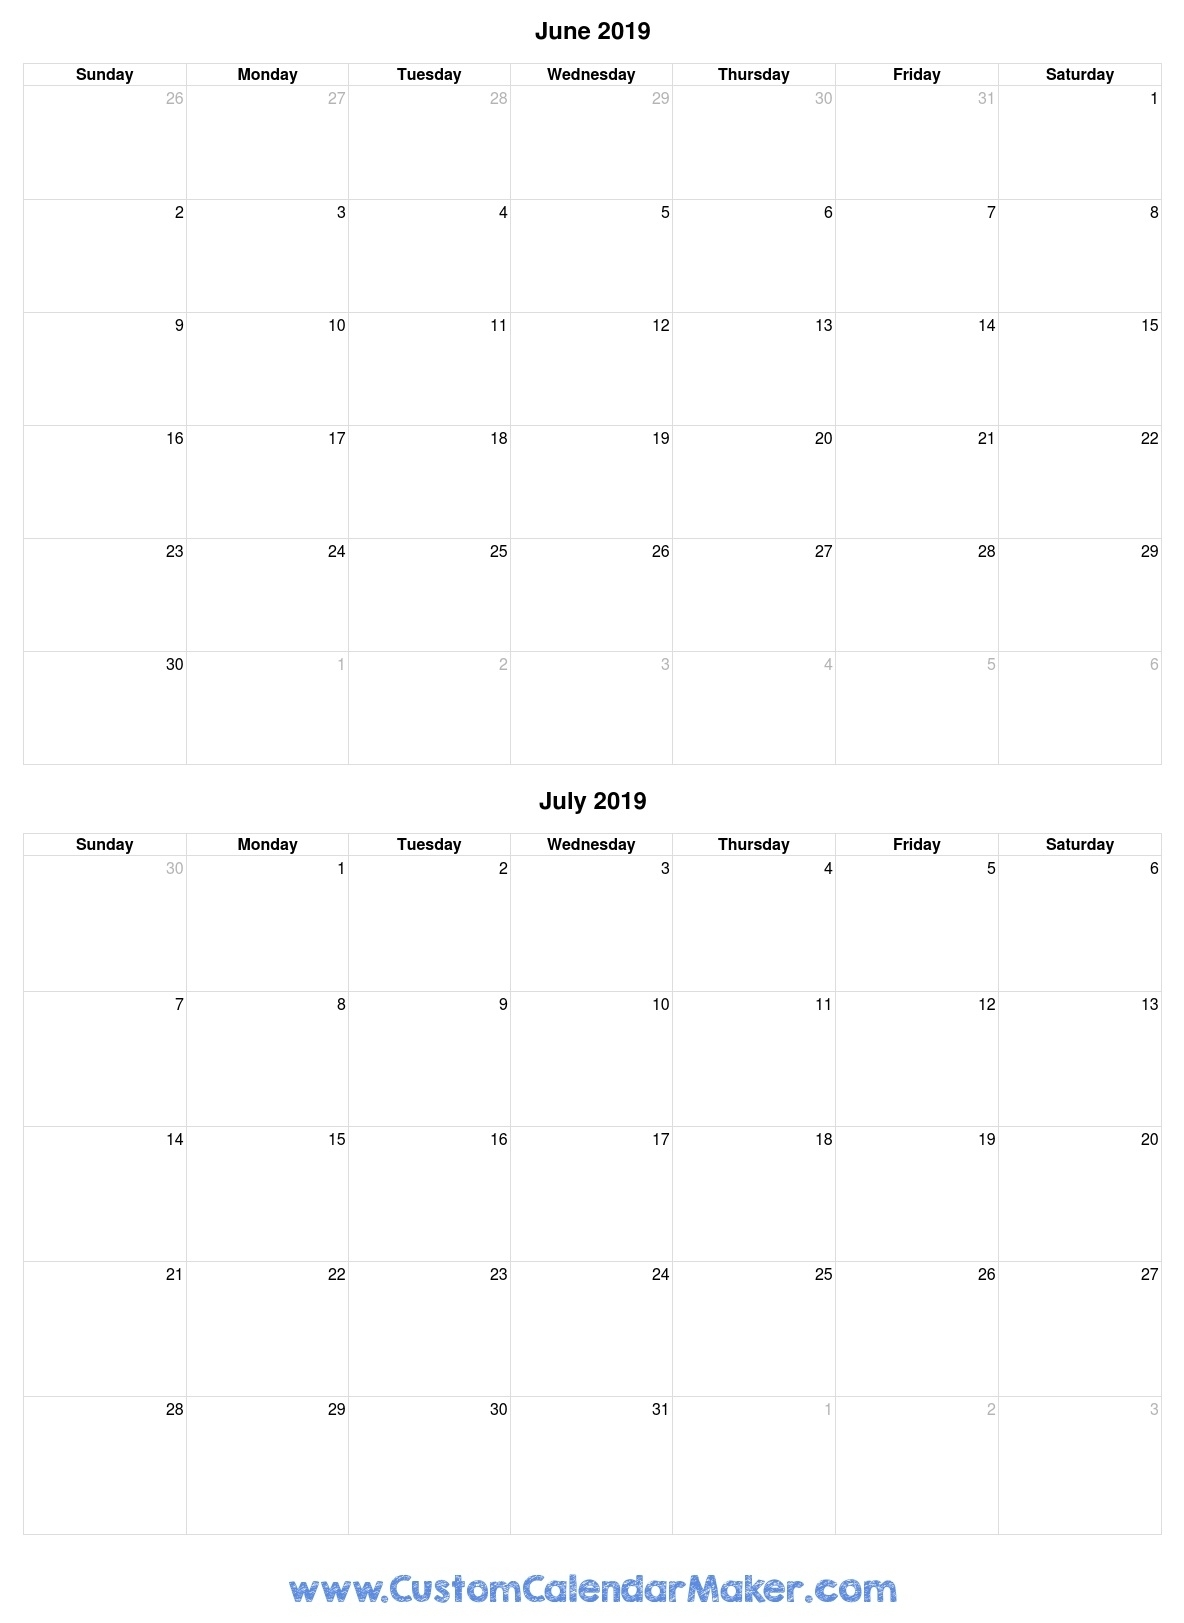 June And July 2019 Free Printable Calendar Template throughout June And July Printable Calendars